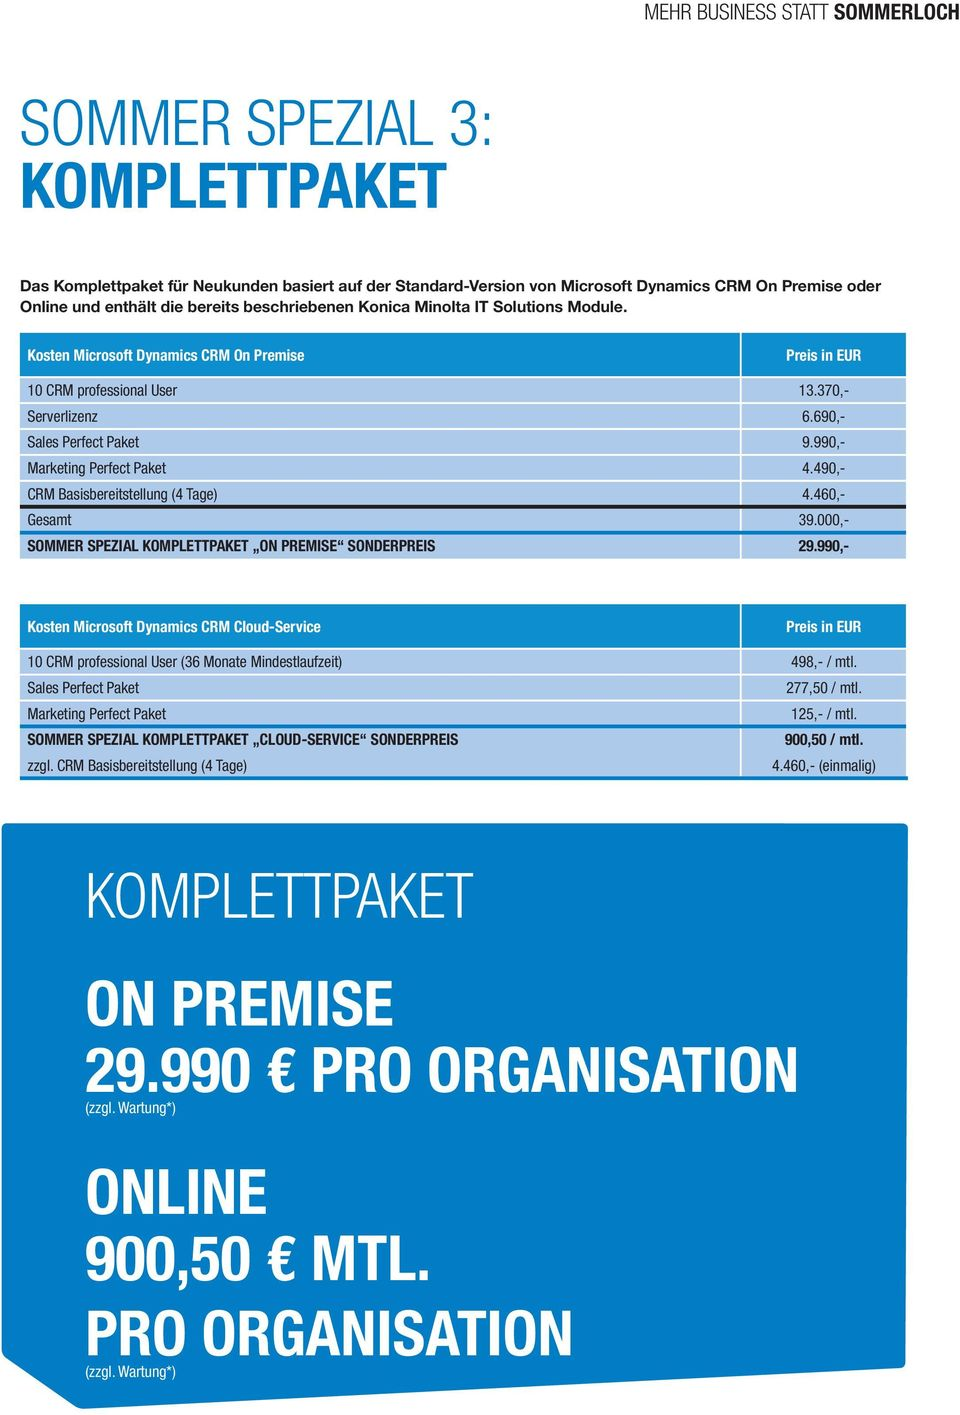 990,- Marketing Perfect Paket 4.490,- CRM Basisbereitstellung (4 Tage) 4.460,- Gesamt 39.000,- SOMMER SPEZIAL KOMPLETTPAKET ON PREMISE SONDERPREIS 29.